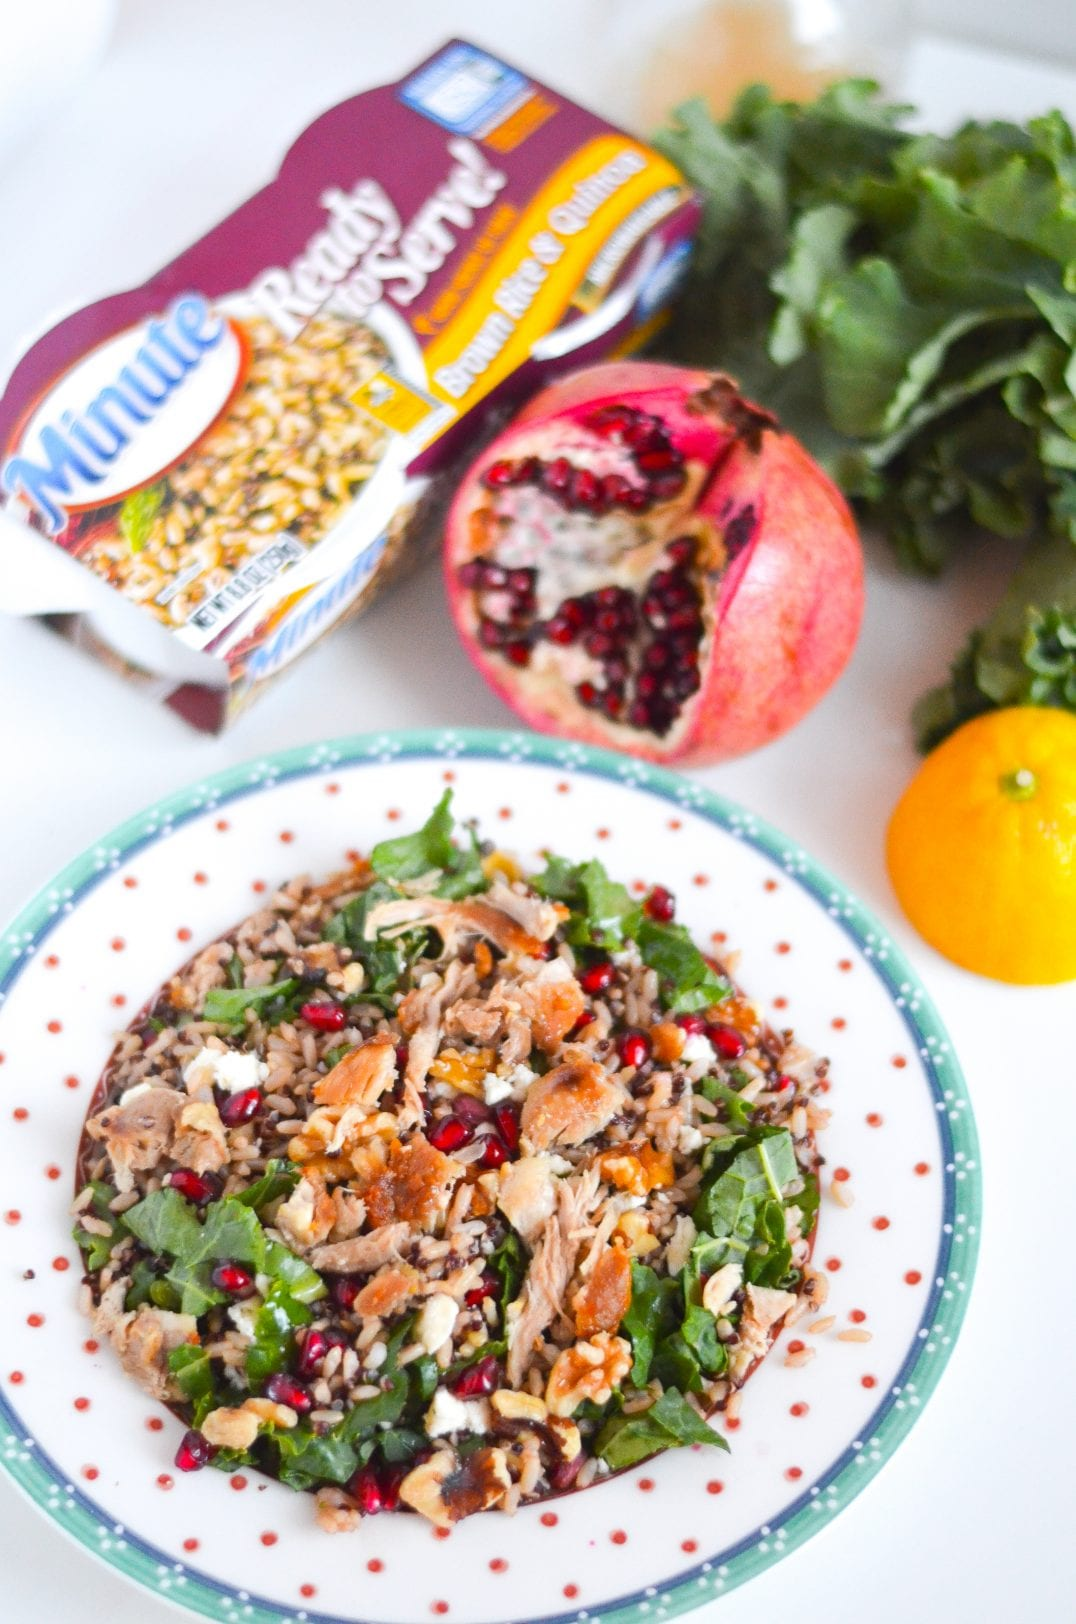 Winter Brown Rice and Quinoa Salad with Lemon Maple Vinaigrette